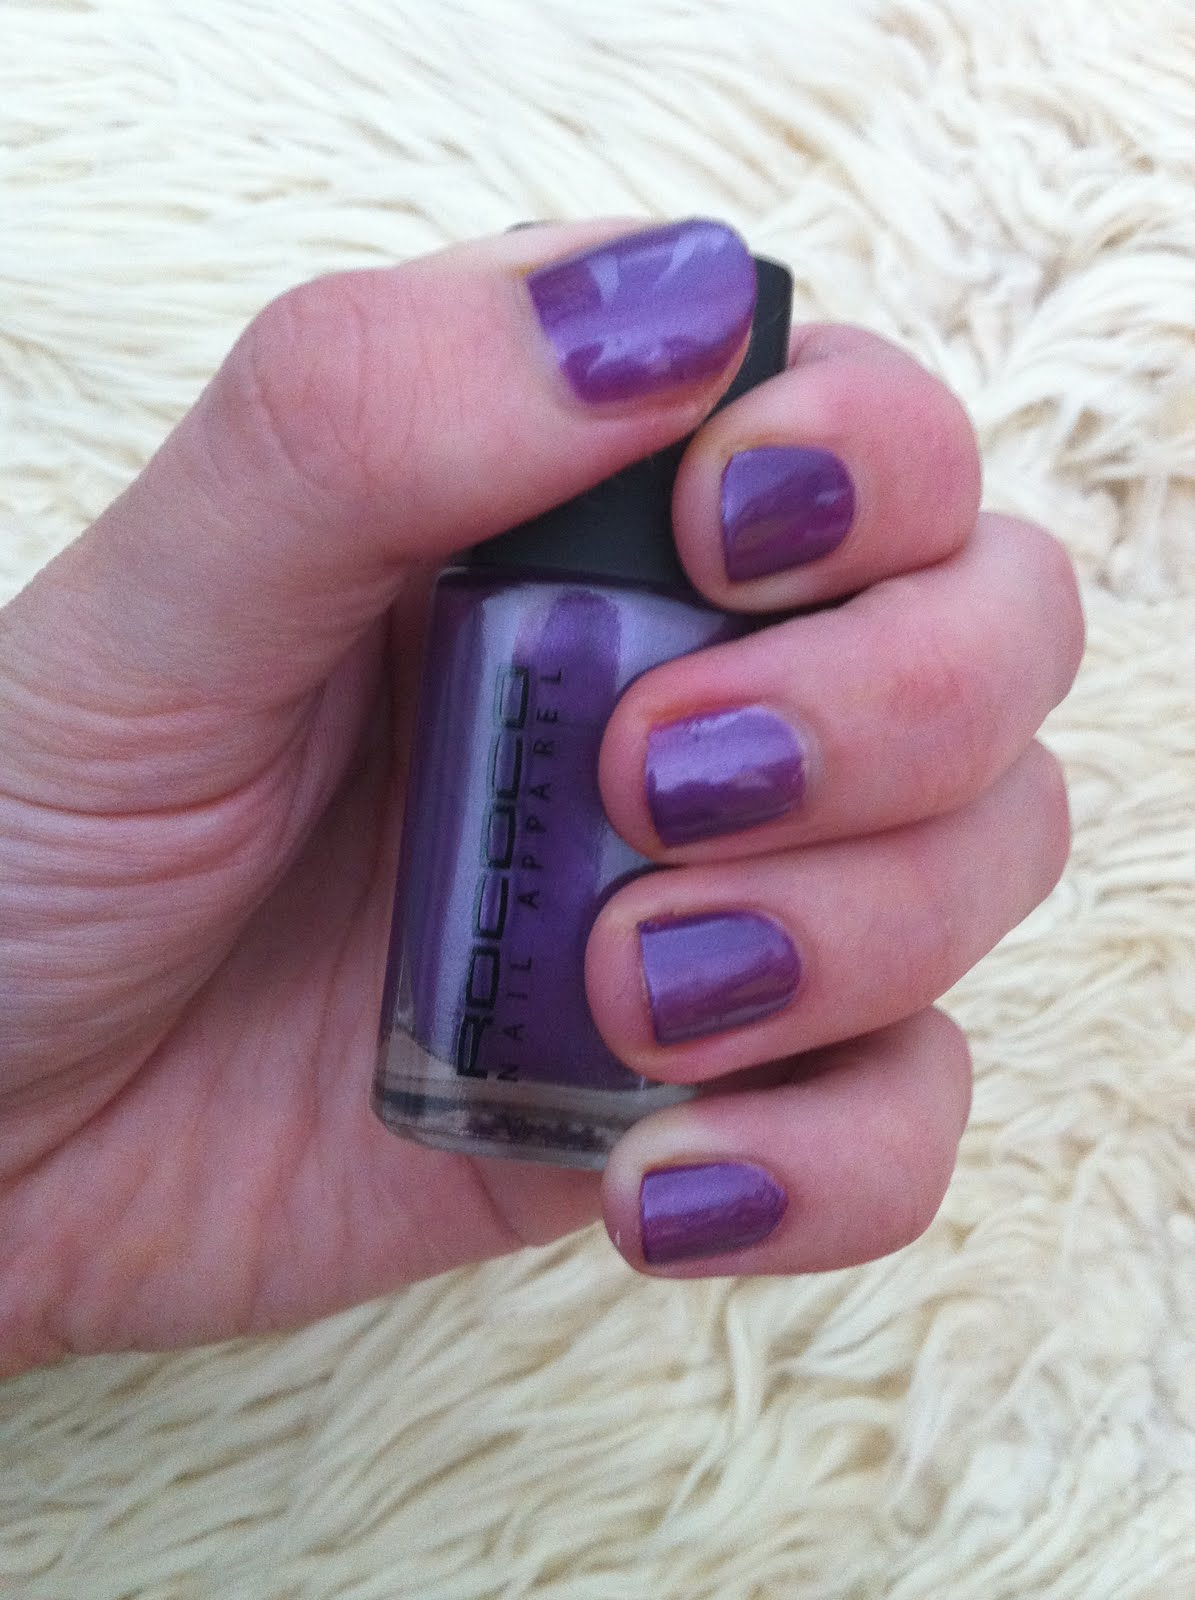 NOTD - Rococo Nail Apparel in Purple Haze | Perfectly Polished